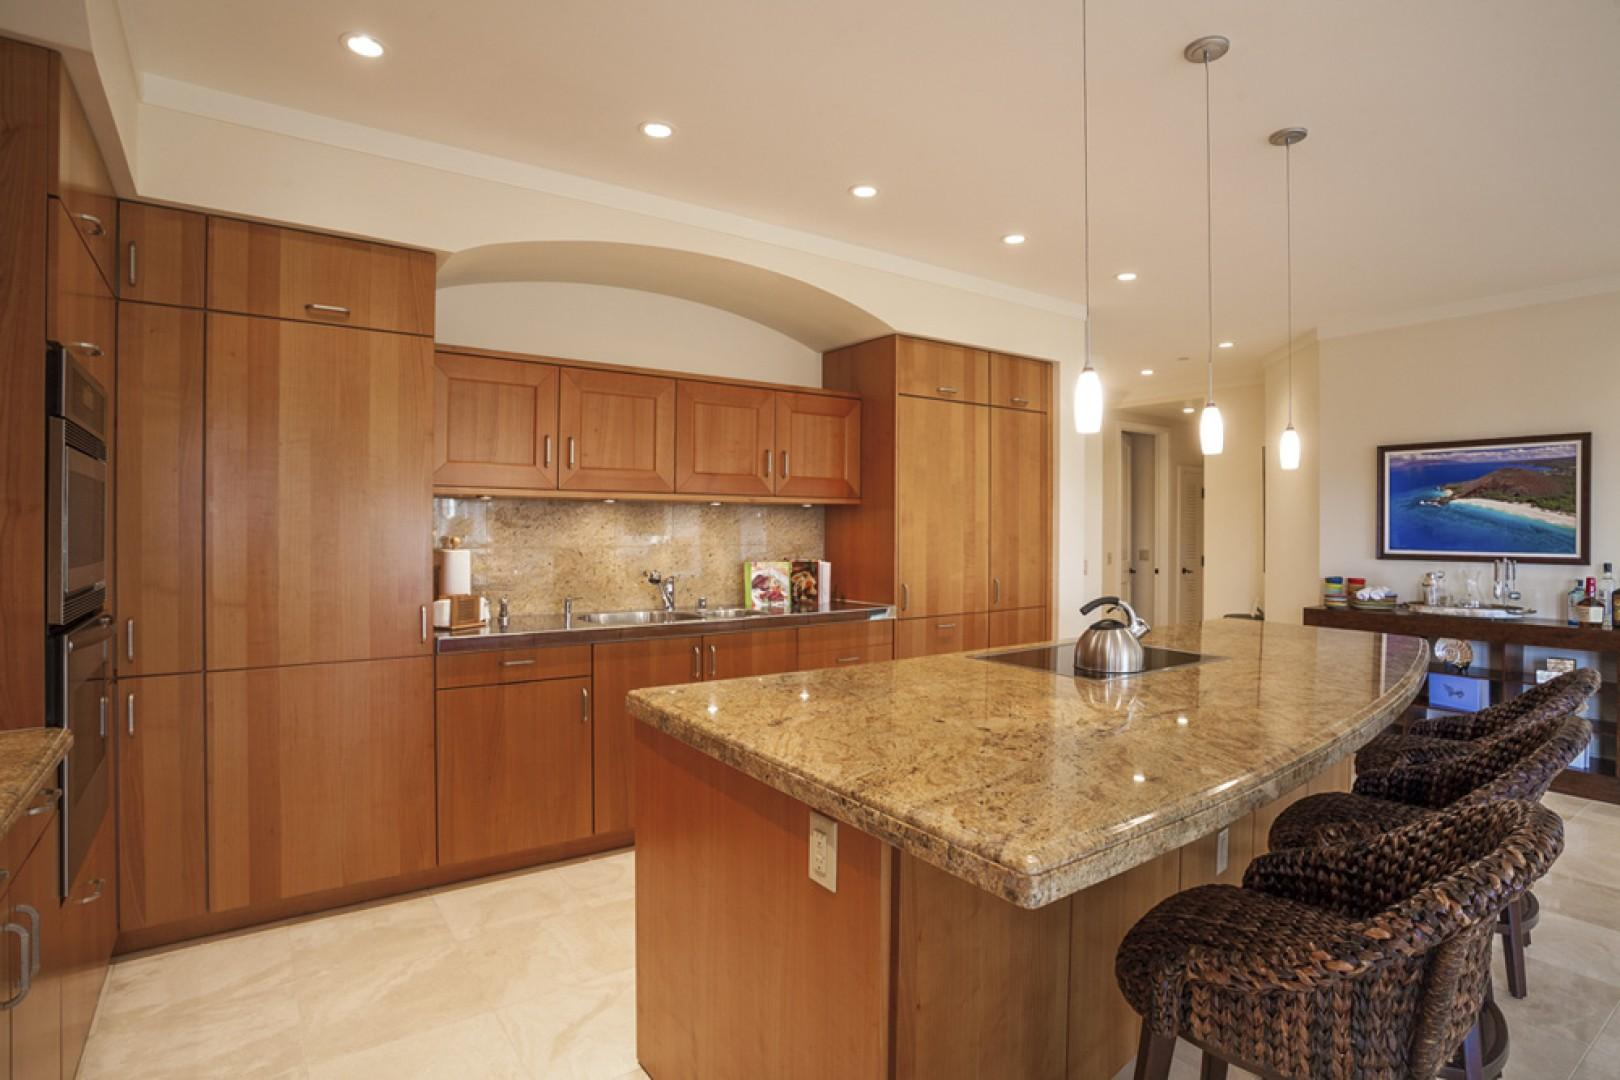 Gorgeous kitchen with high-quality appliances and all new cookware and tableware.